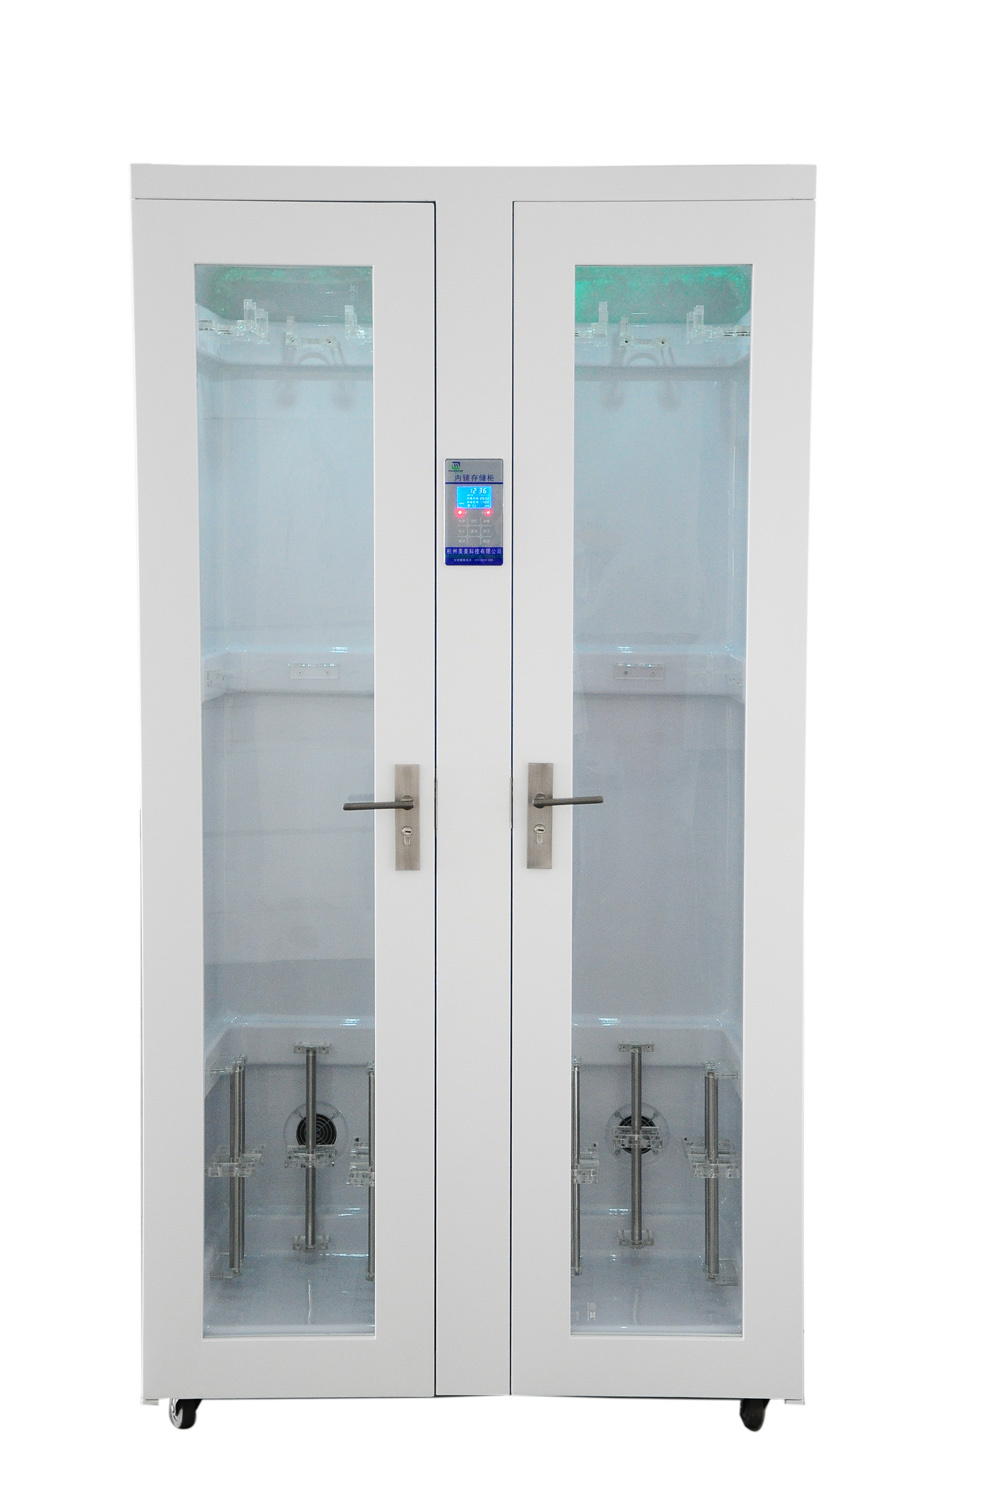 Excellent Endoscope Storage Cabinets 1000 x 1494 · 271 kB · jpeg